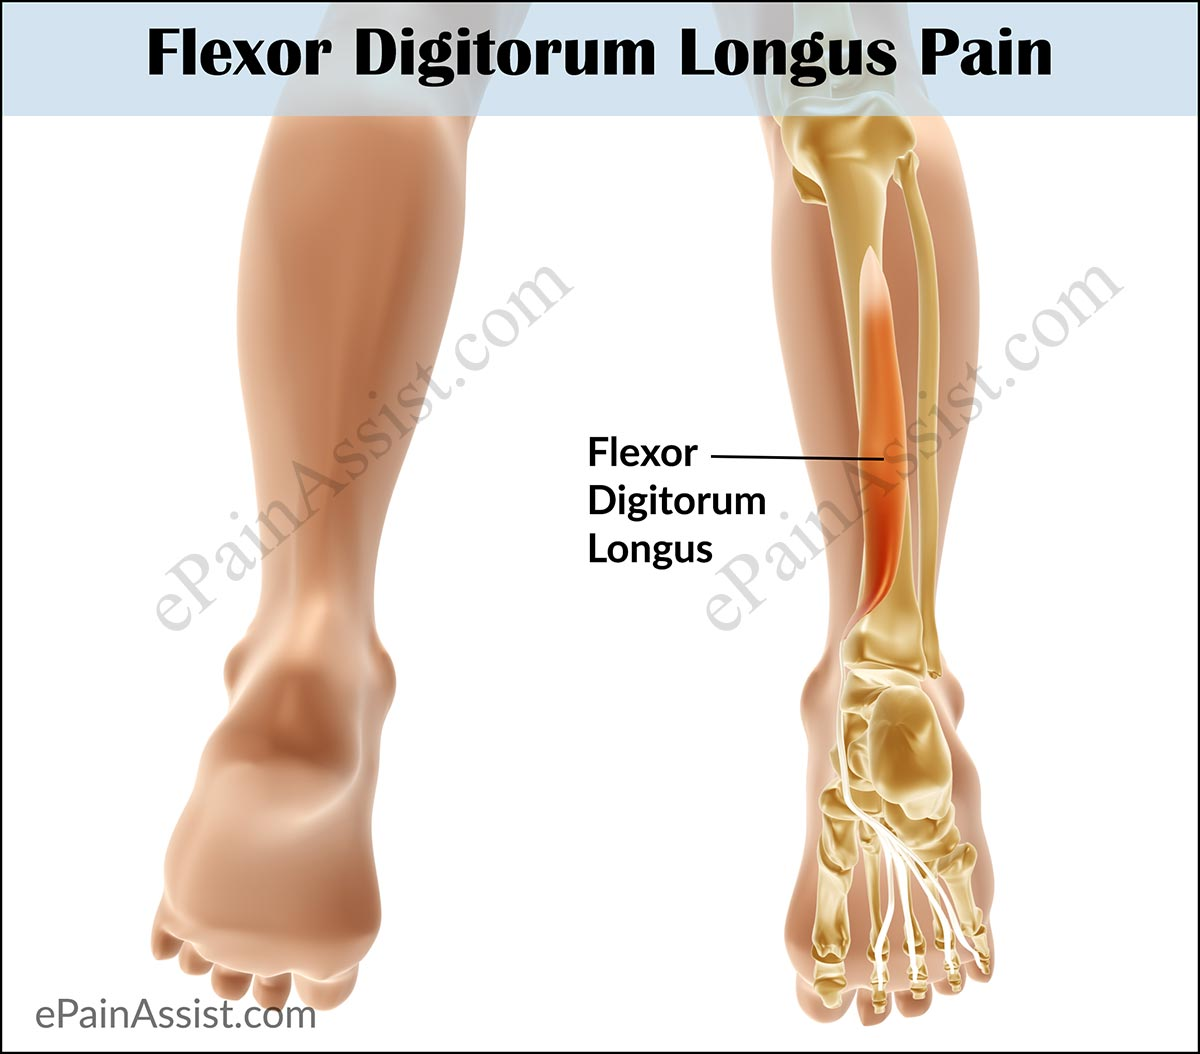 Flexor Digitorum Longus Pain|Symptoms|Causes|Treatment